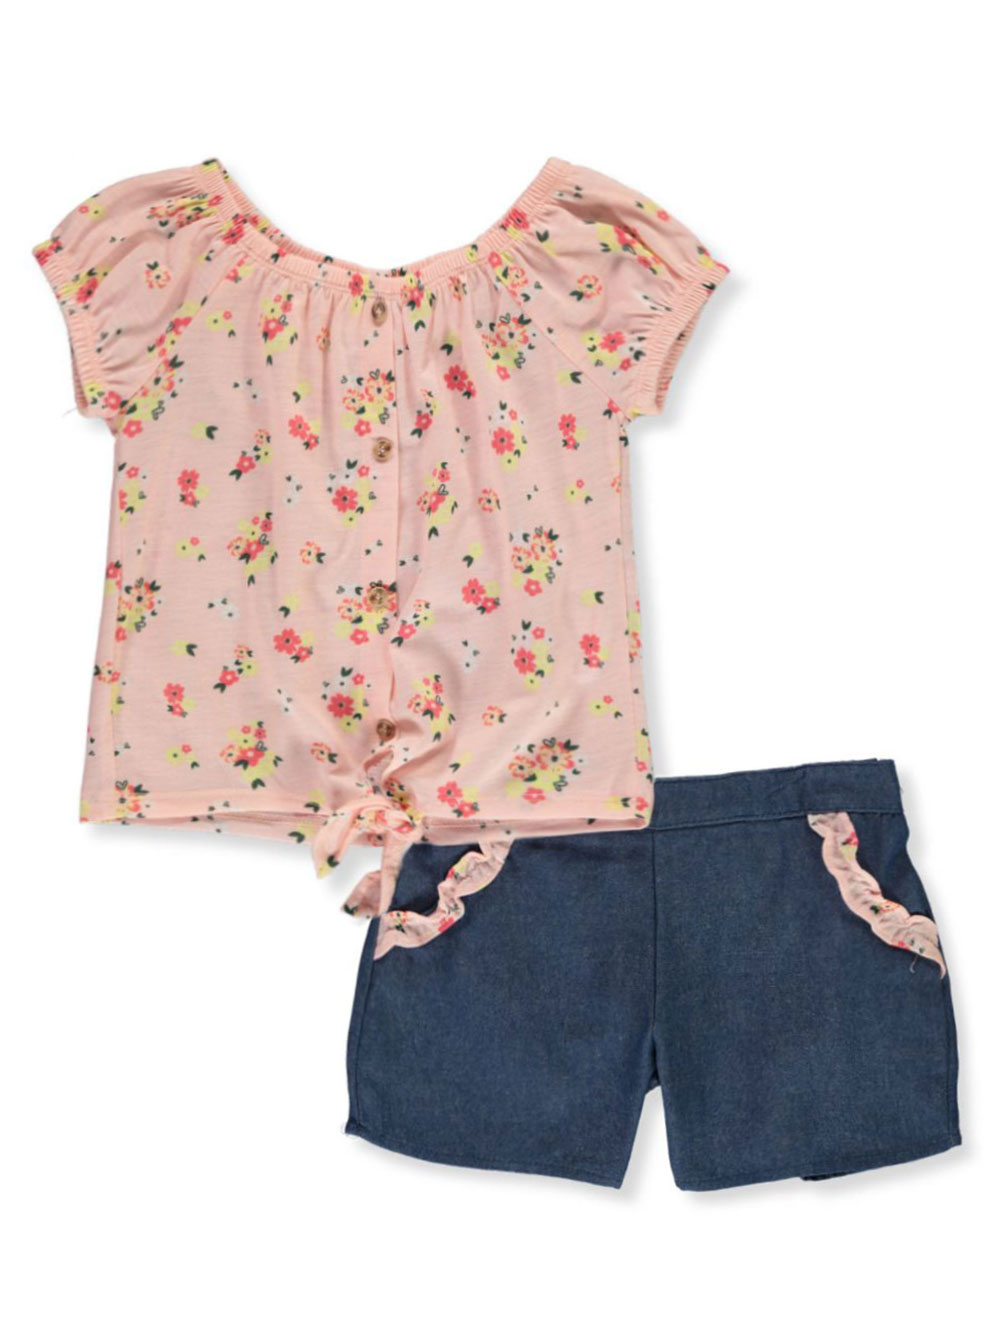 Girls' 2-Piece Chambray Shorts Set Outfit